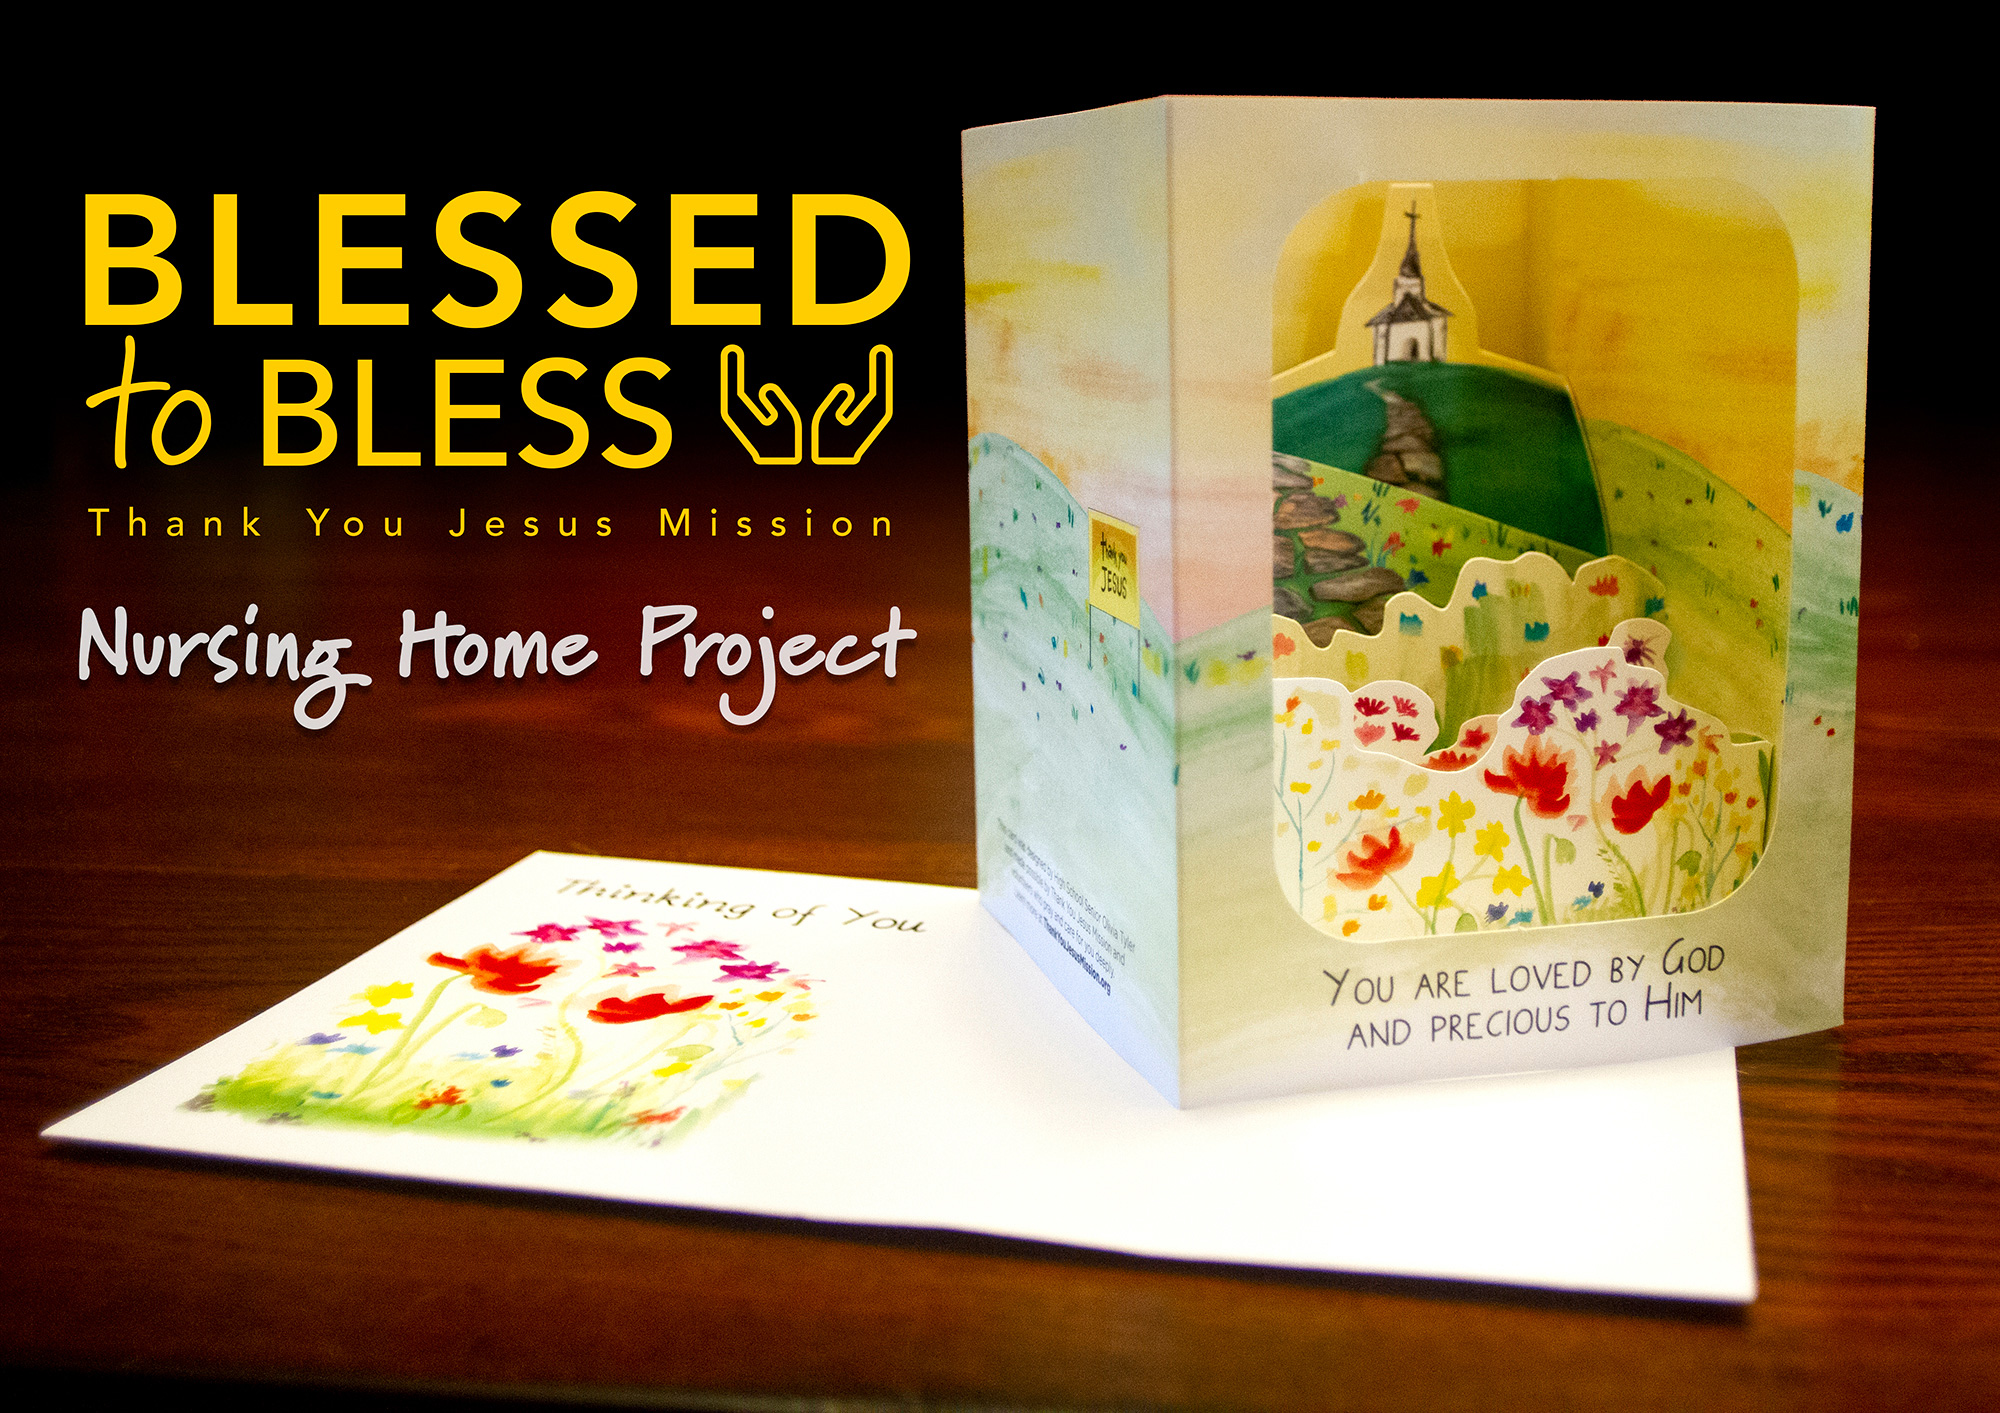 Blessed to Bless - Nursing Home Project